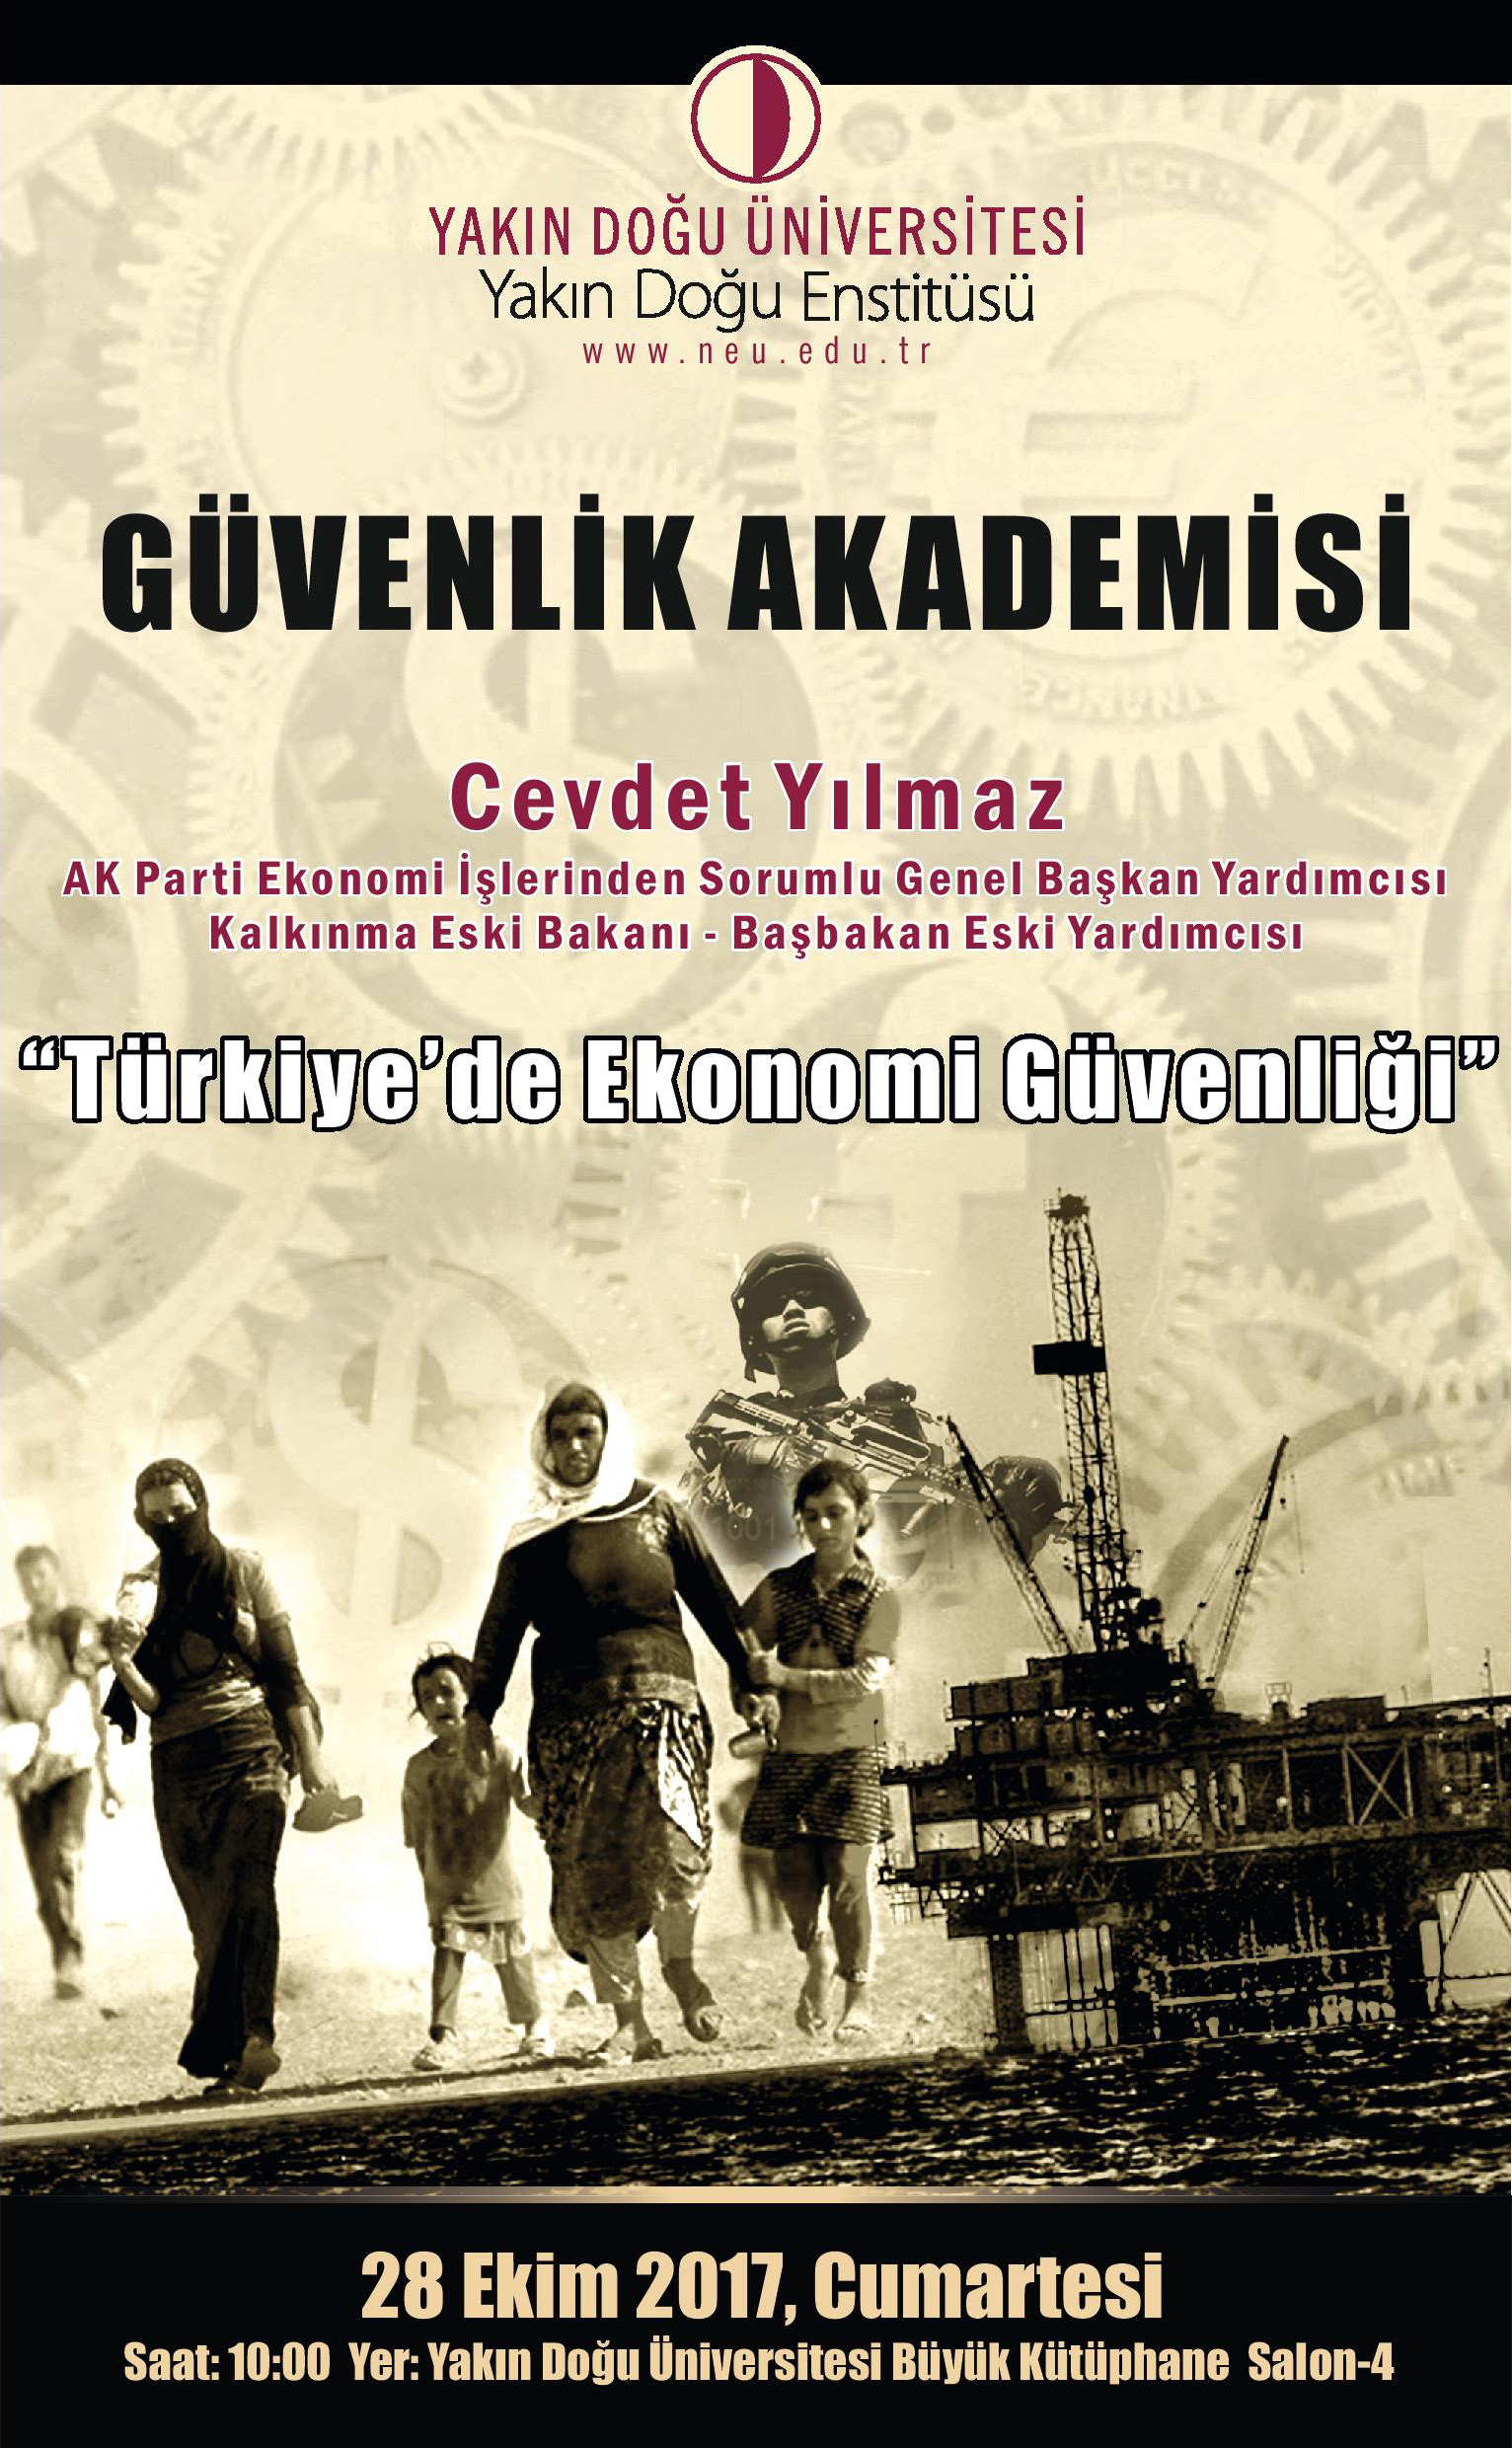 Cevdet Yilmaz to speak at Near East University Security Academy